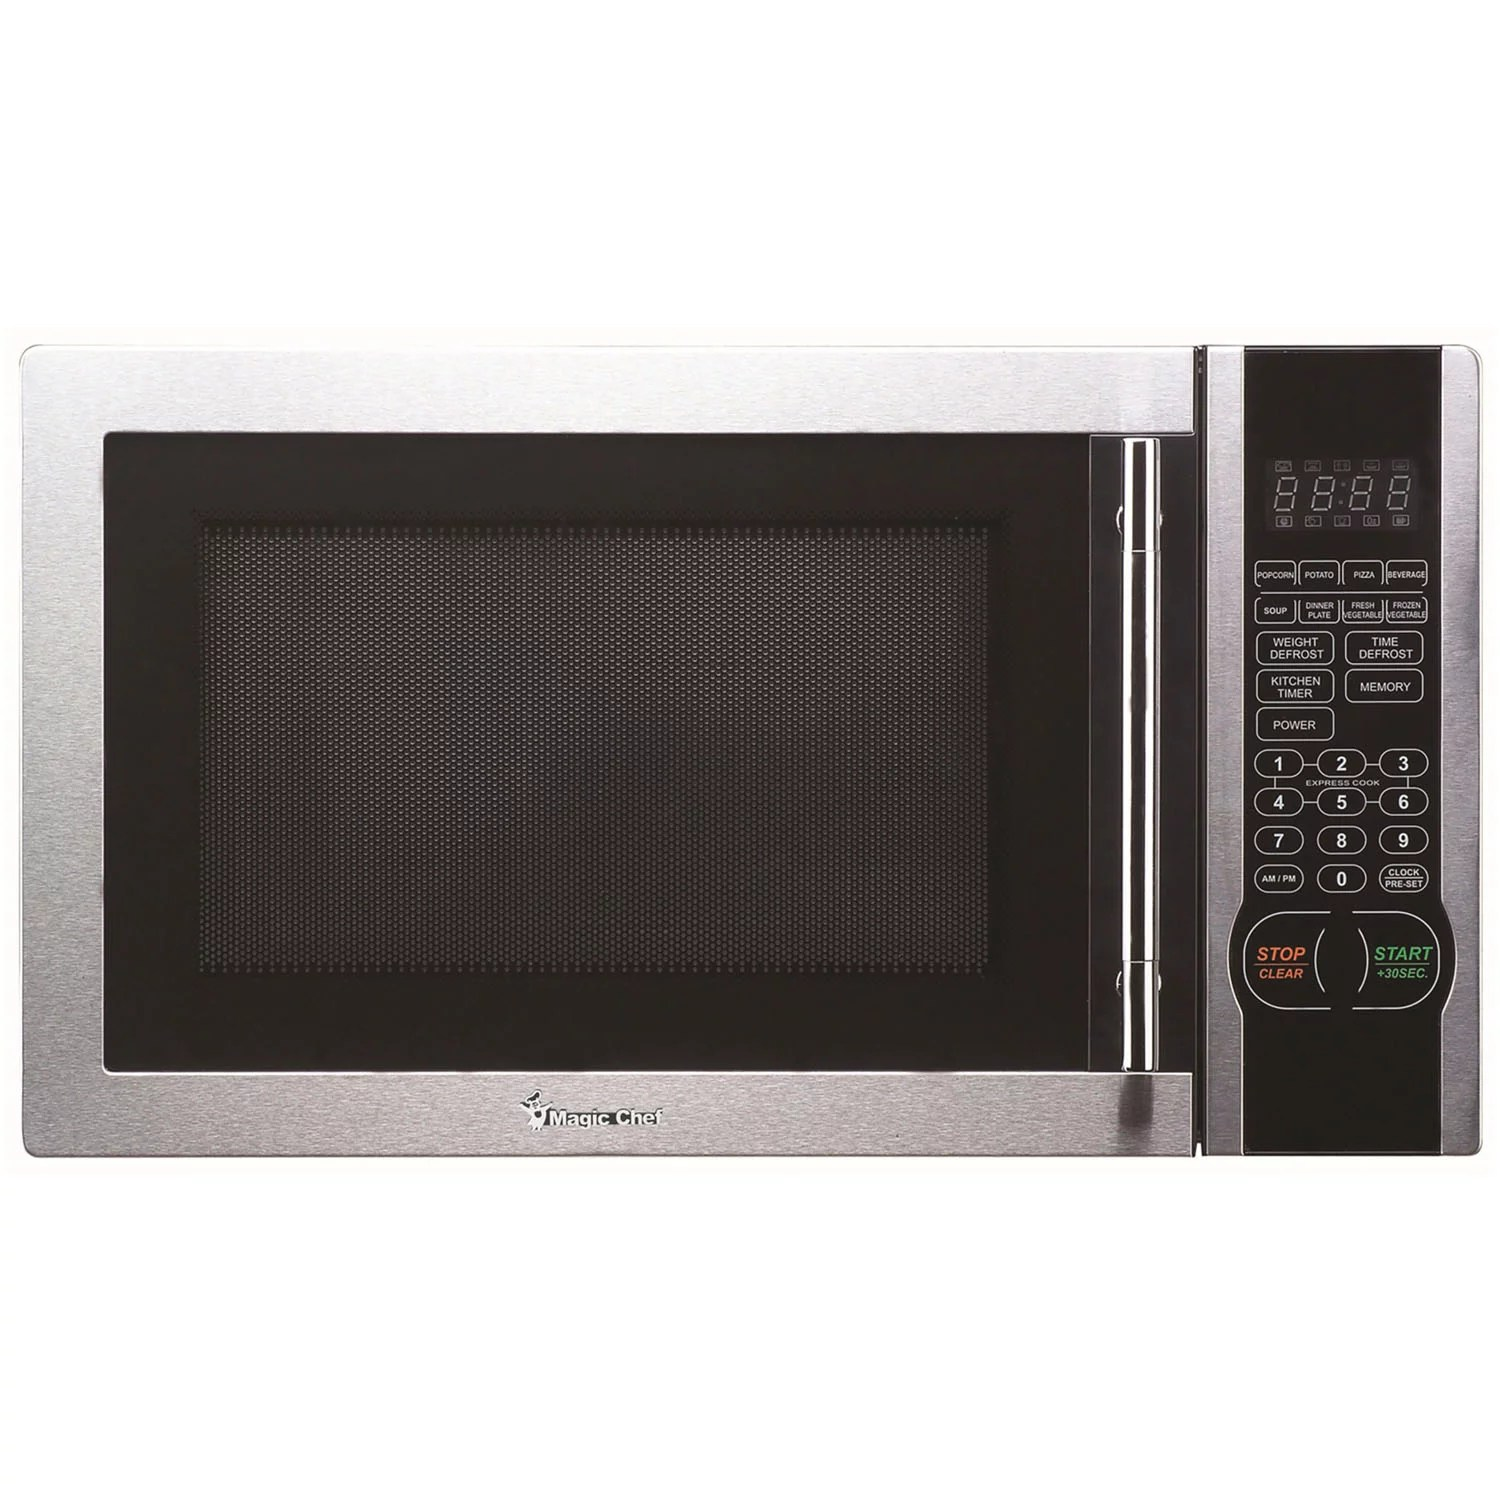 magic chef 1 1 cu ft 1000w countertop microwave oven with stylish door handle